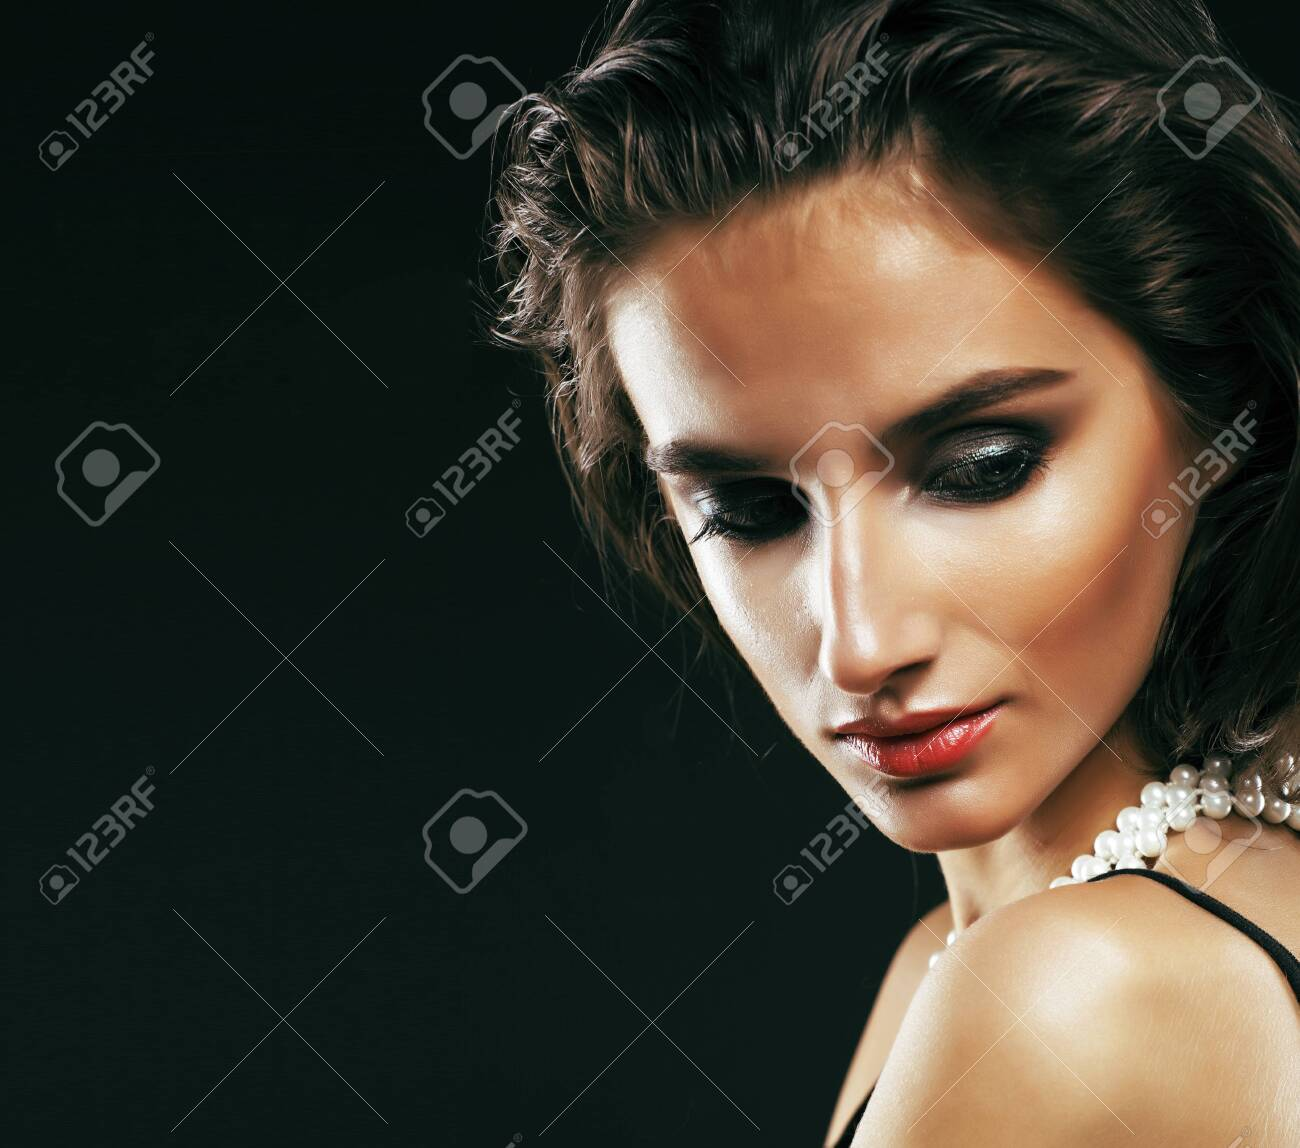 beauty rich woman with bright makeup wearing luxury jewellery on black background, fashion lady curly hairstyle - 140602456